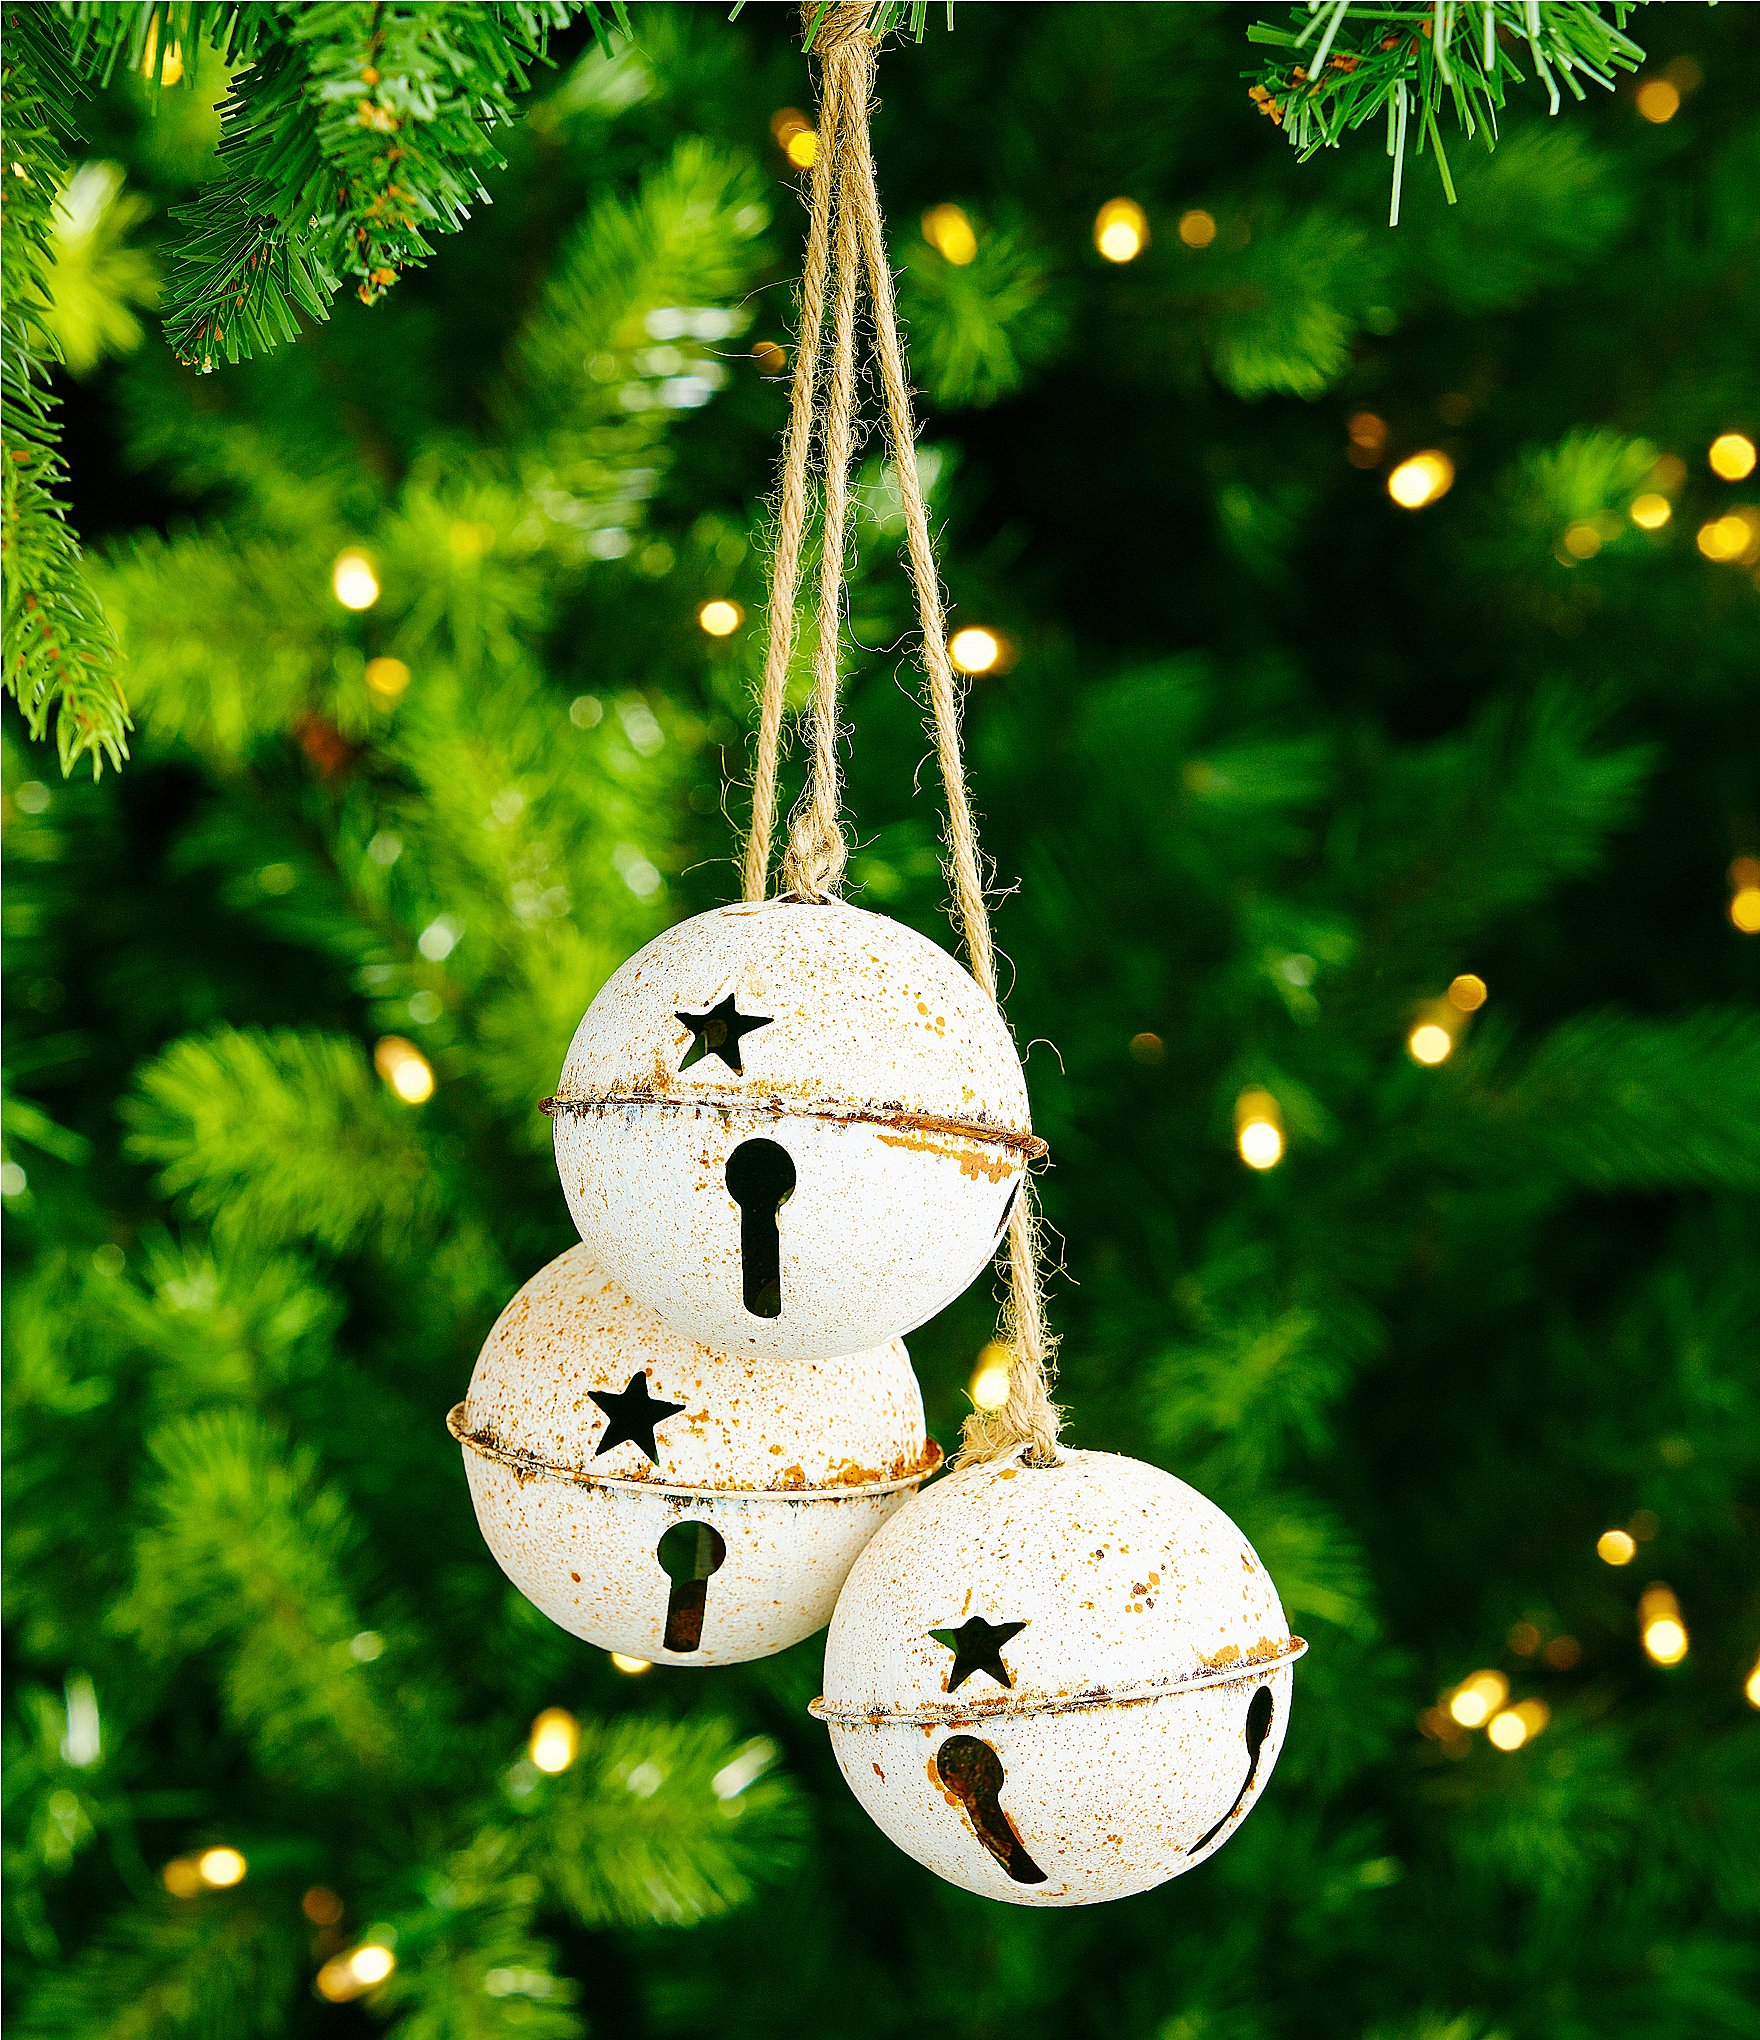 Christmas ornament black and white 187 home design 2017 - Christmas Ornament Black And White 187 Home Design 2017 22